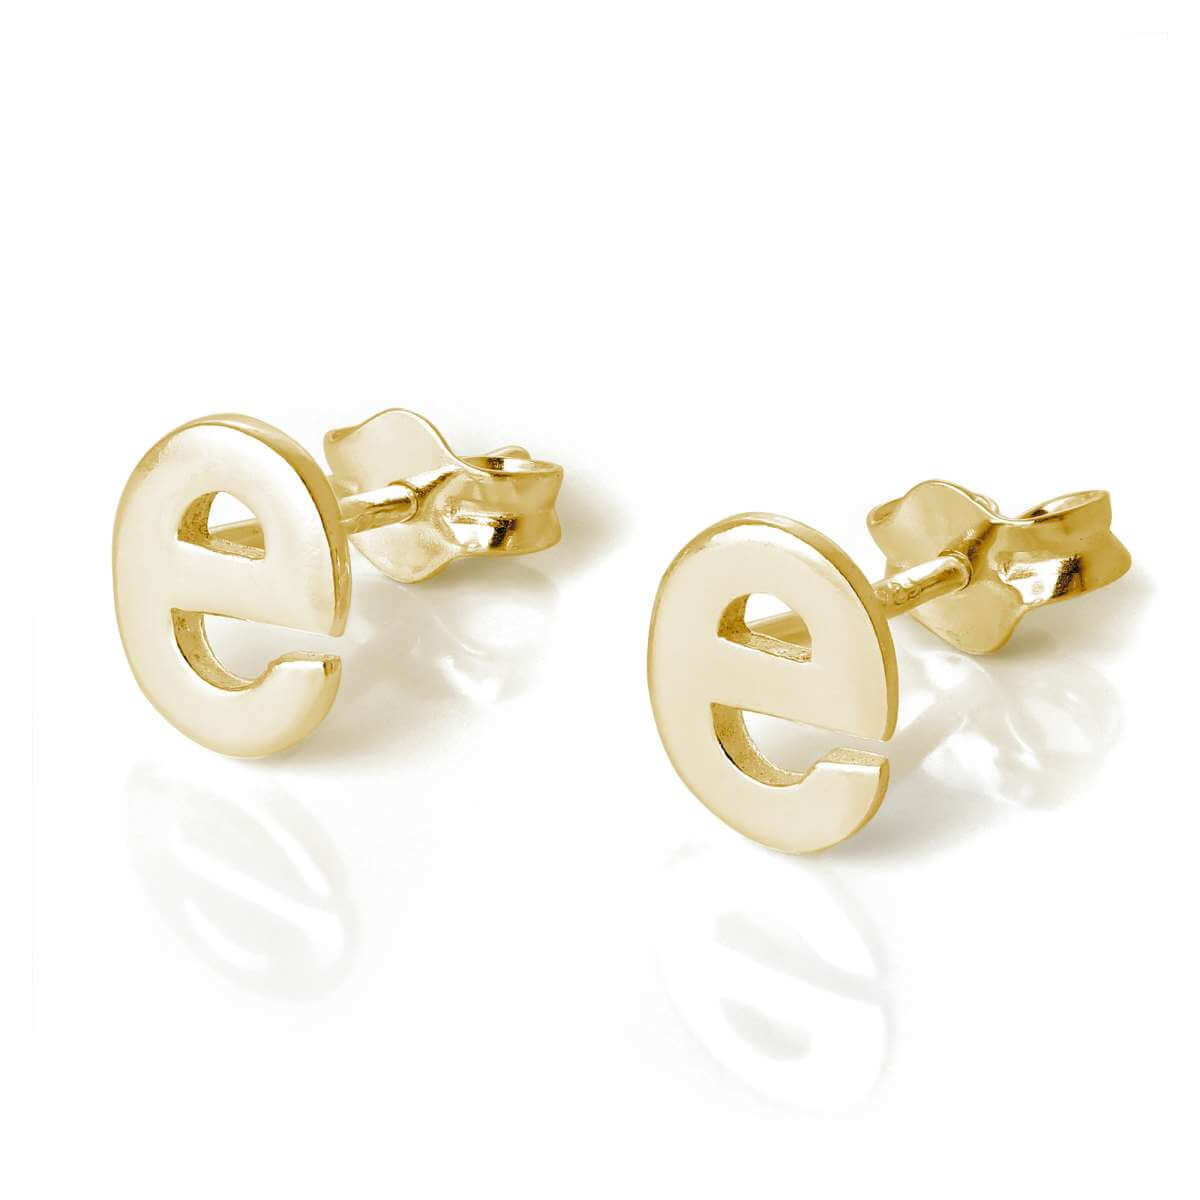 Gold Plated Sterling Silver Alphabet Letter E Stud Earrings